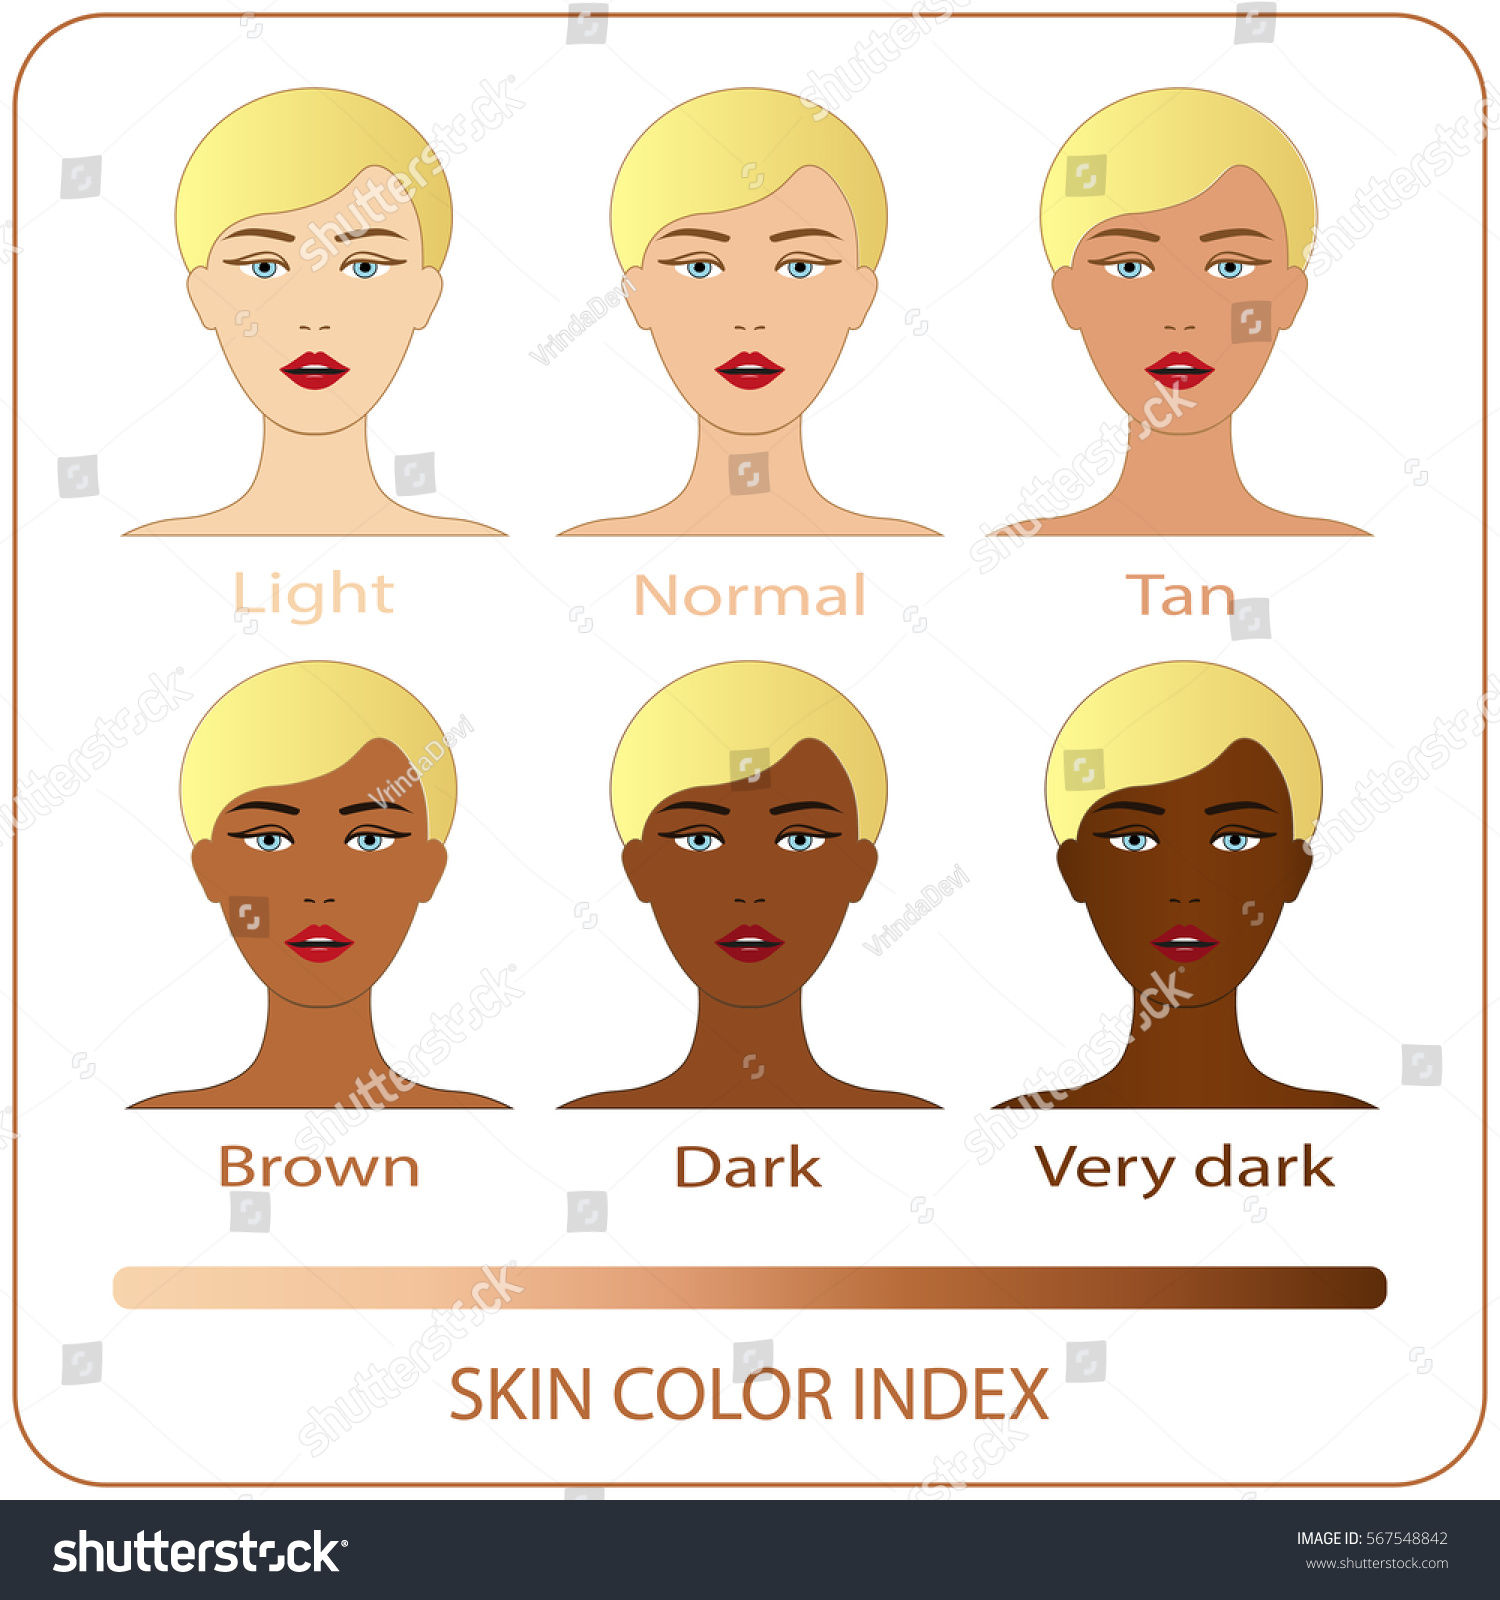 Skin color index infographic vector woman stock vector 567548842 skin color index infographic in vector woman face with different color skin chart of level nvjuhfo Choice Image